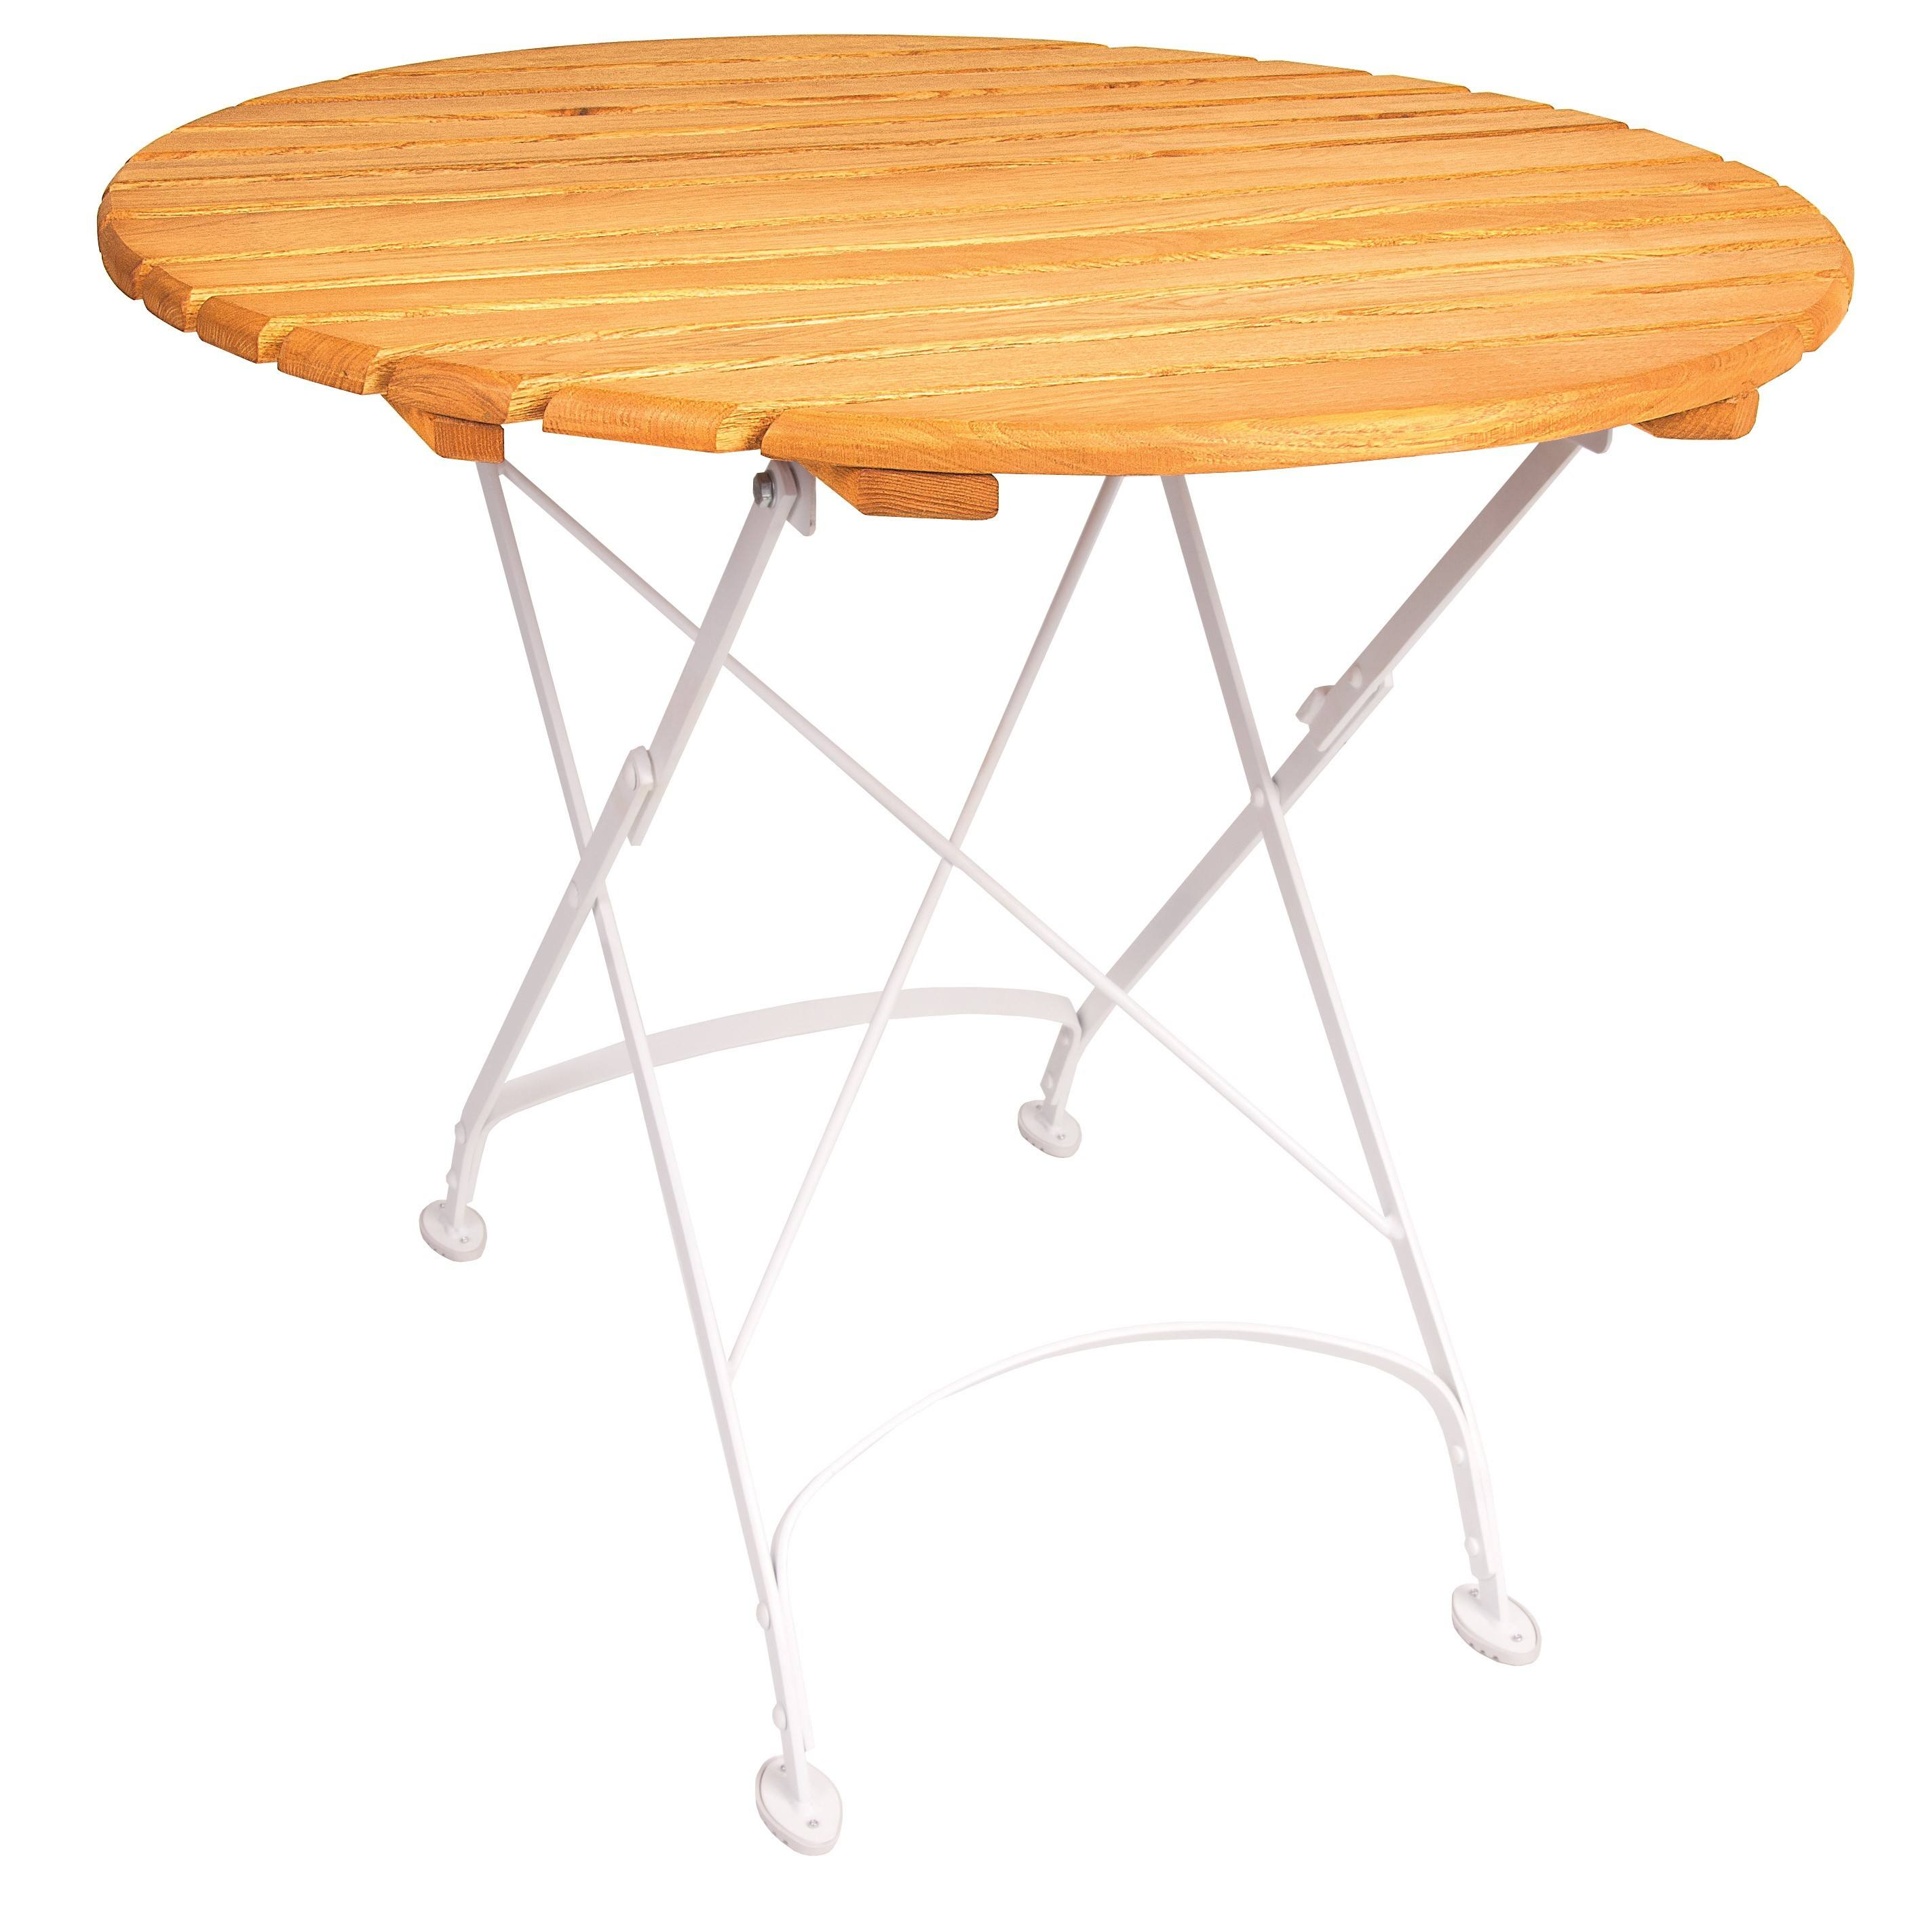 <p>Outdoor Furniture – Metal & Wooden Dining Collection – Creta Round Table.</p> <p> </p> <p>Creta Furniture round table with honey coloured hardwood tabletop with gently curved metal shaped frame</p> <p> </p> <p>Ideally suited for either indoor or outdoor relaxed dining location in pubs or restaurants or more intimate café bistro al fresco area or for events requiring easy to fold and store furniture</p>